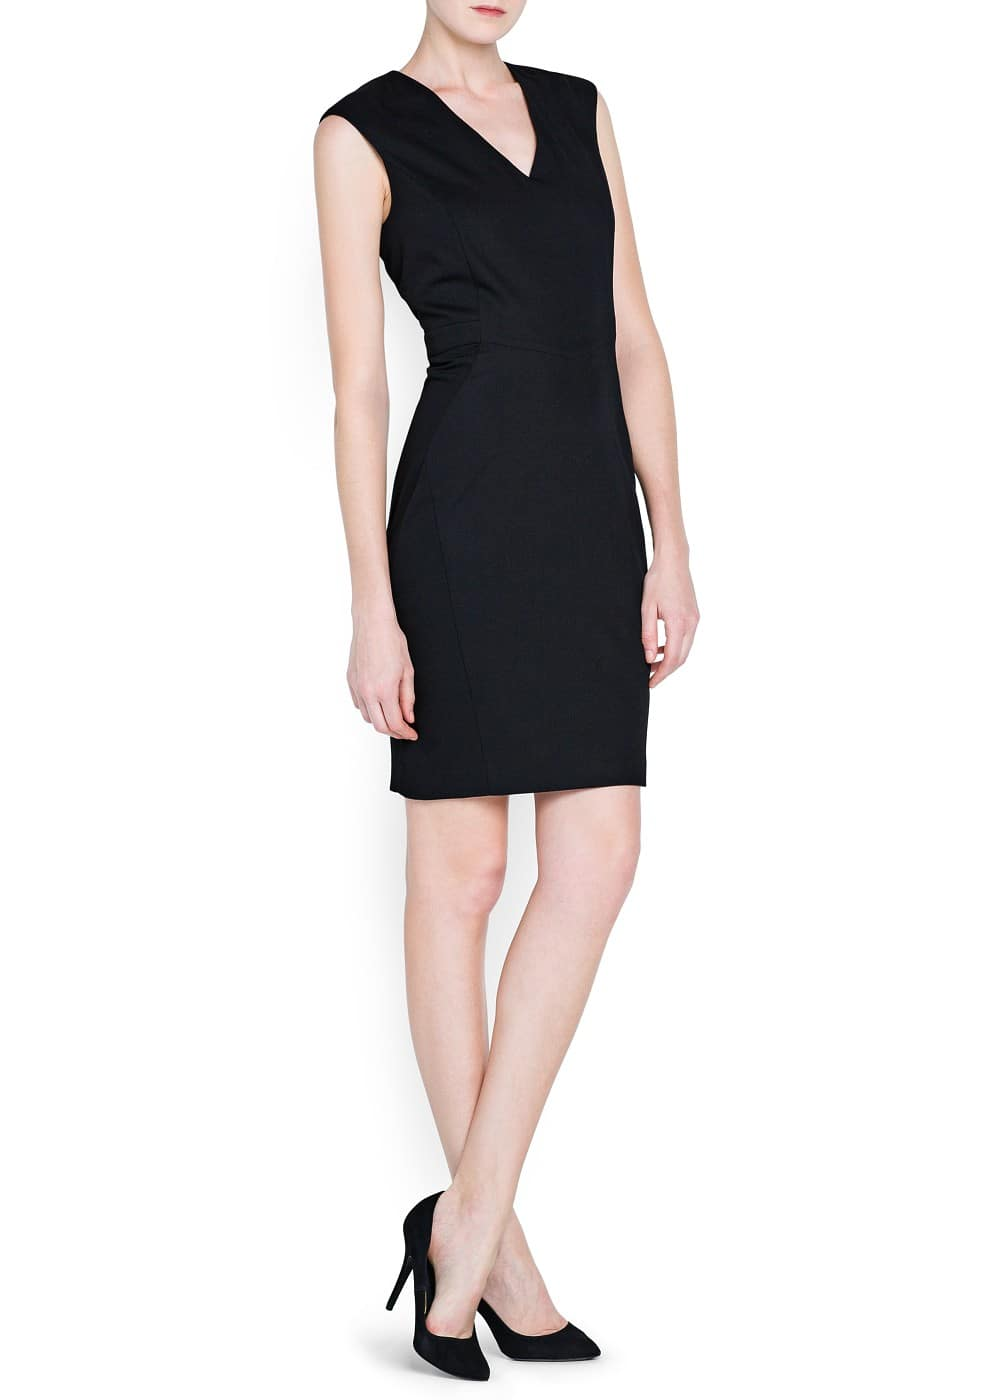 V-neckline fitted dress